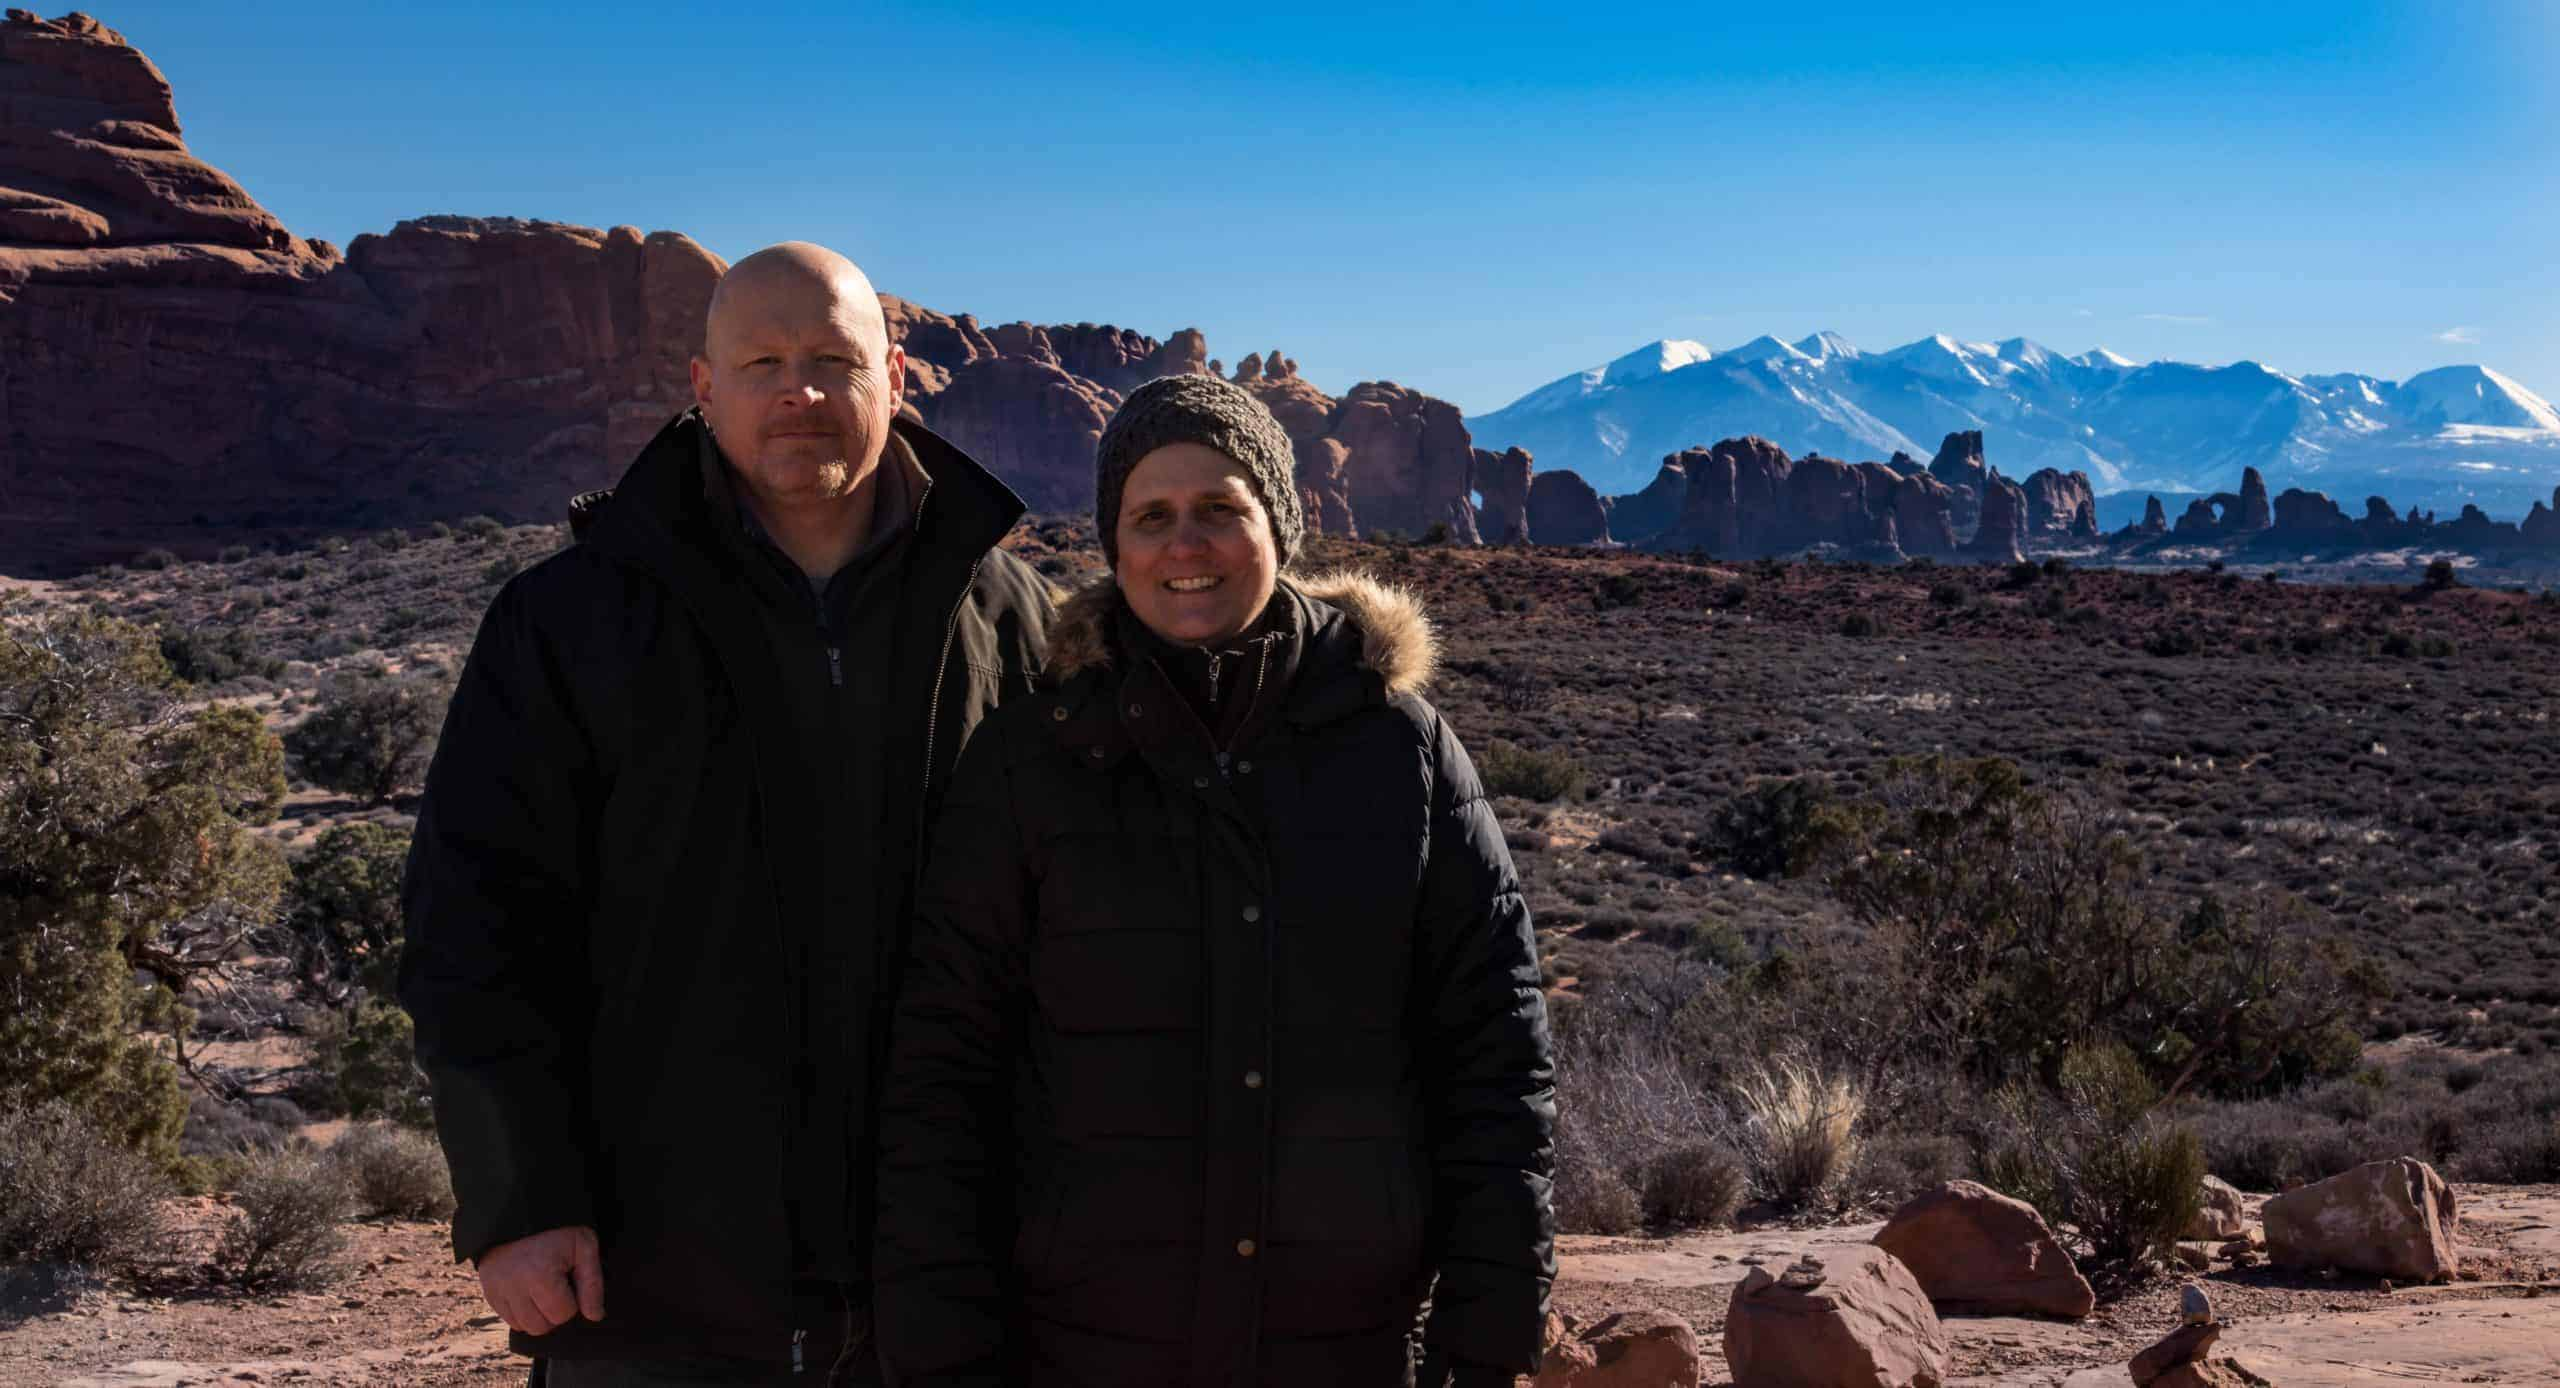 Dave and Jamie at Arches National Park.